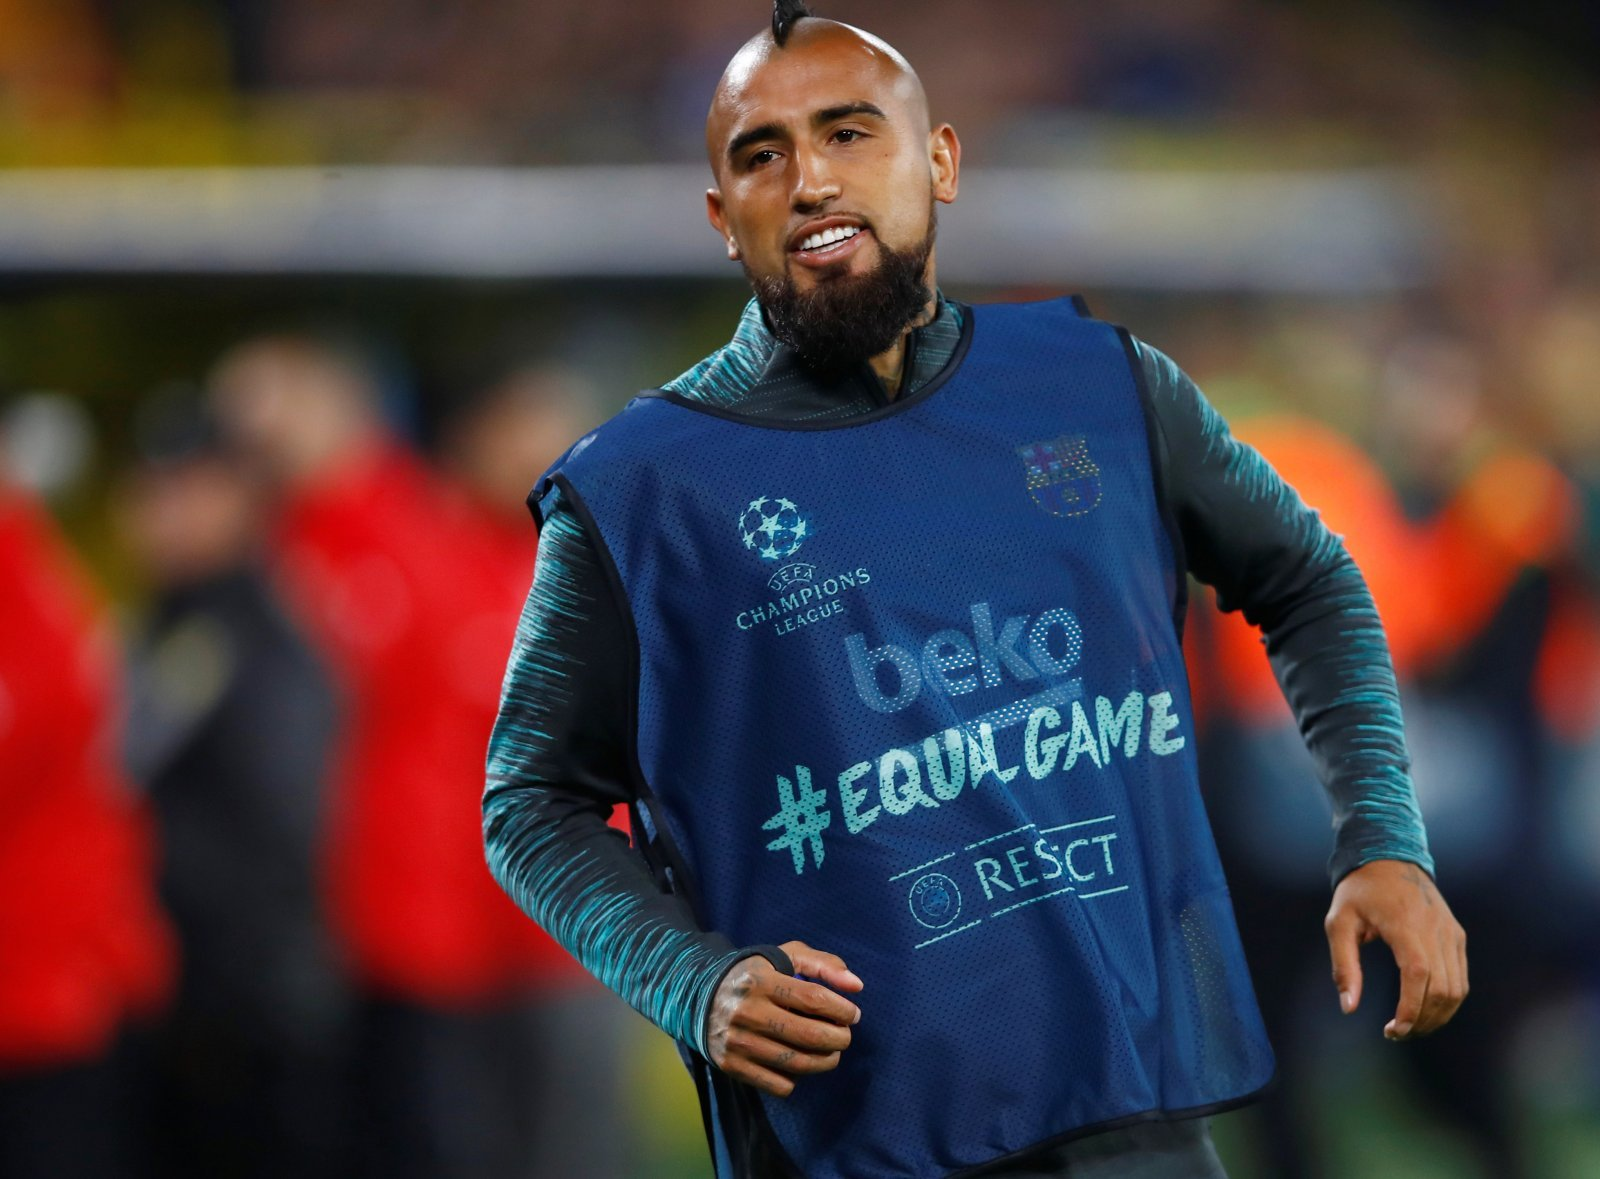 Unsung Hero: Arturo Vidal produces midfield masterclass in Barcelona's 5-1 win over Real Valladolid